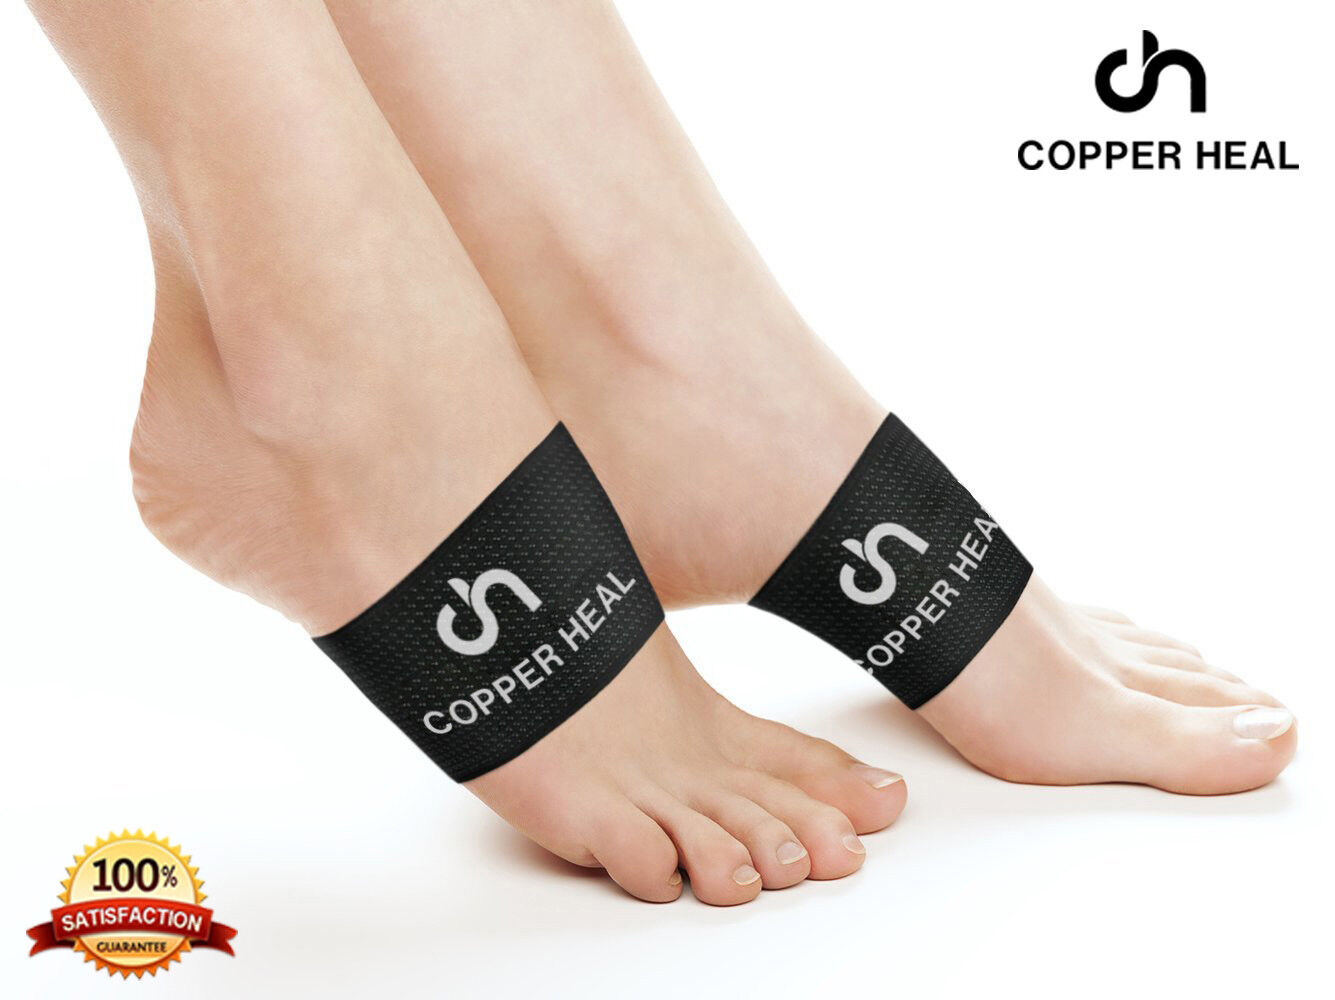 Arch Copper Compression Support Brace  COPPER HEAL Foot Plan